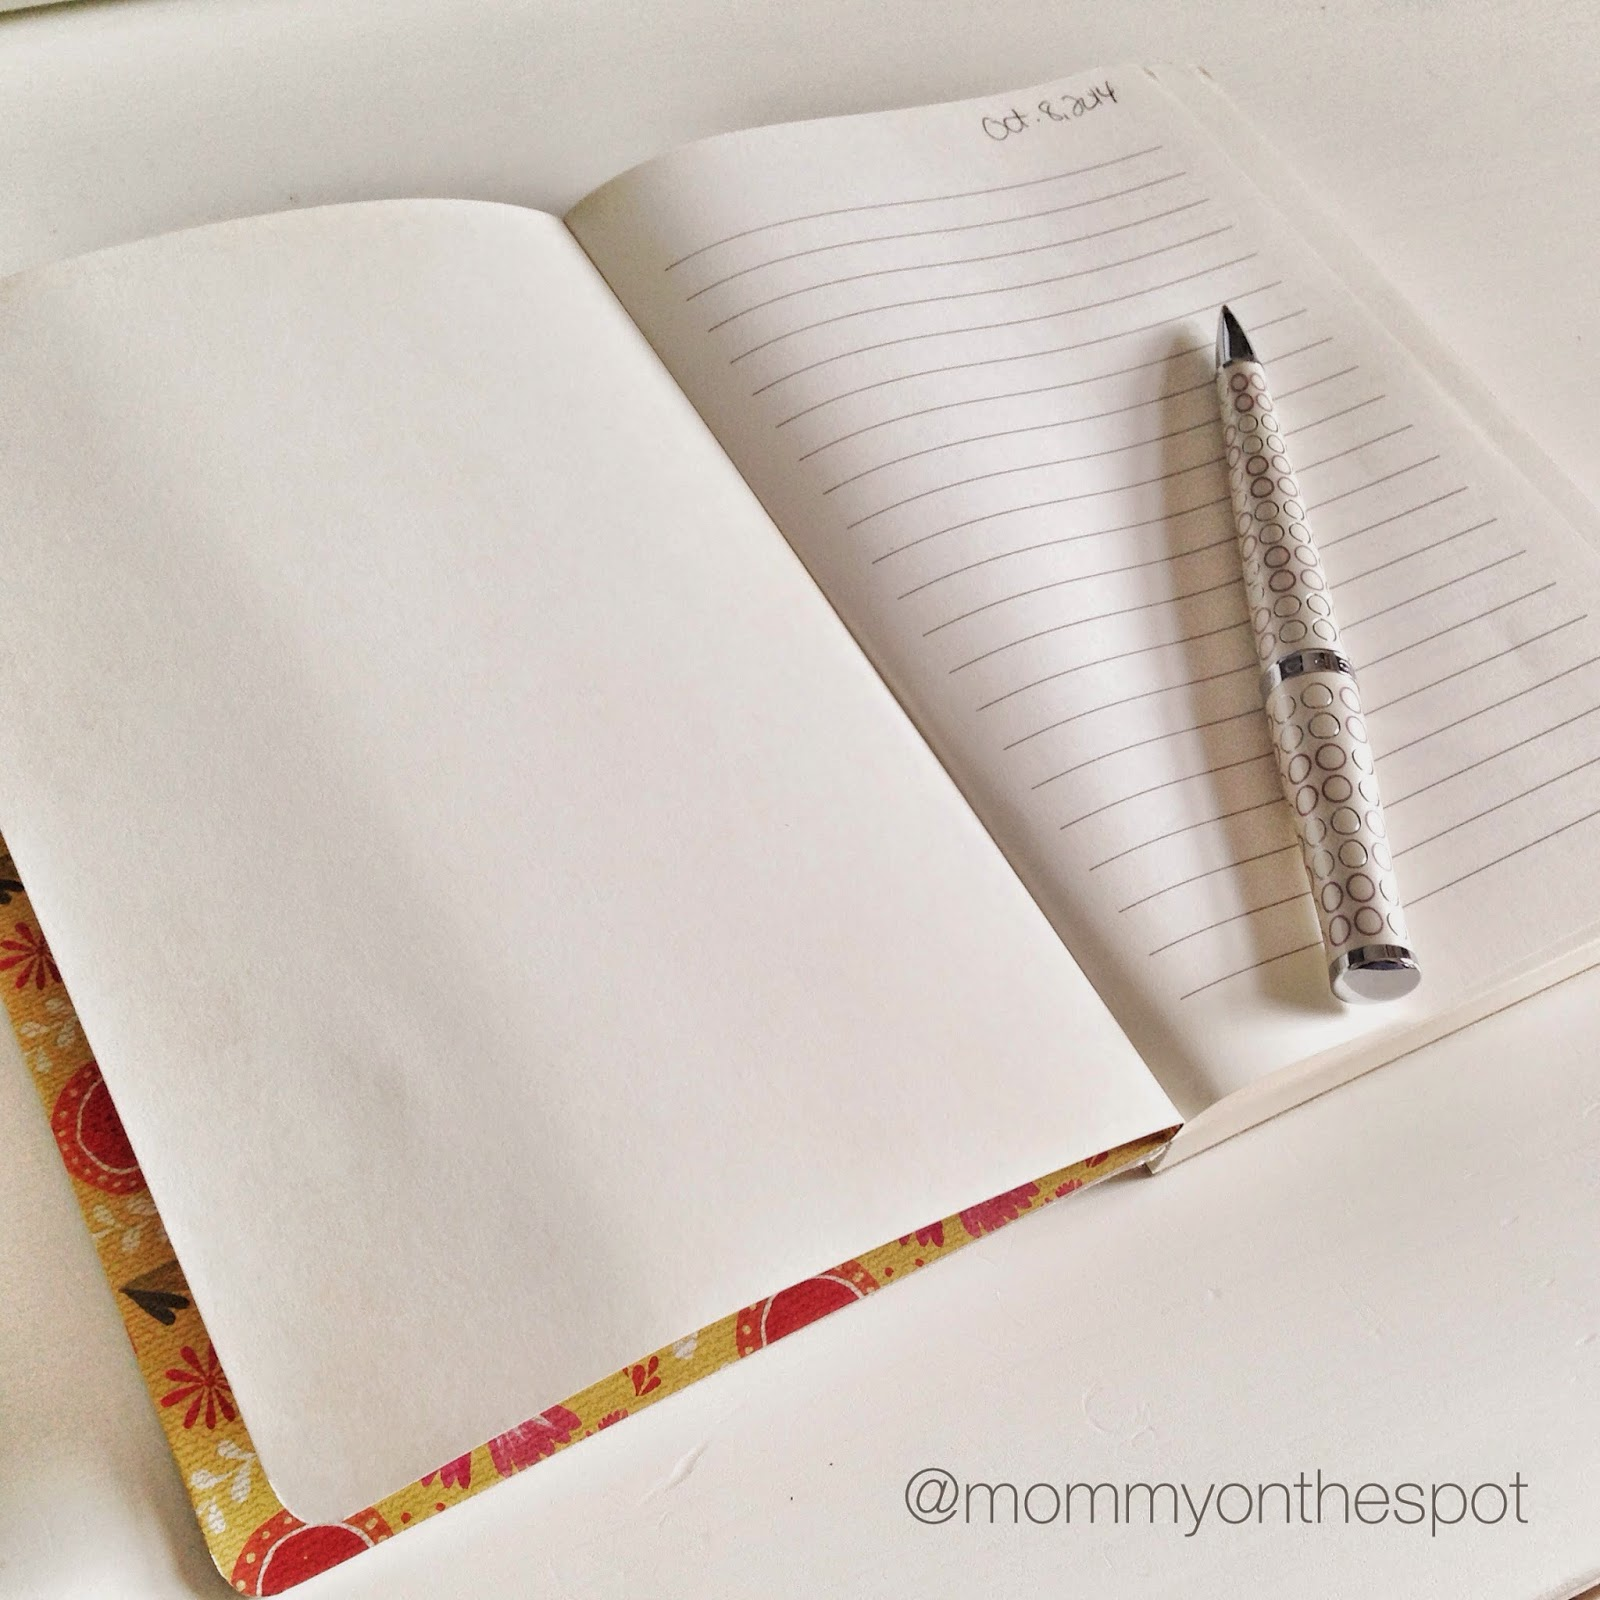 erin janda rawlings mommy on the spot herstories personal essay boot camp journal